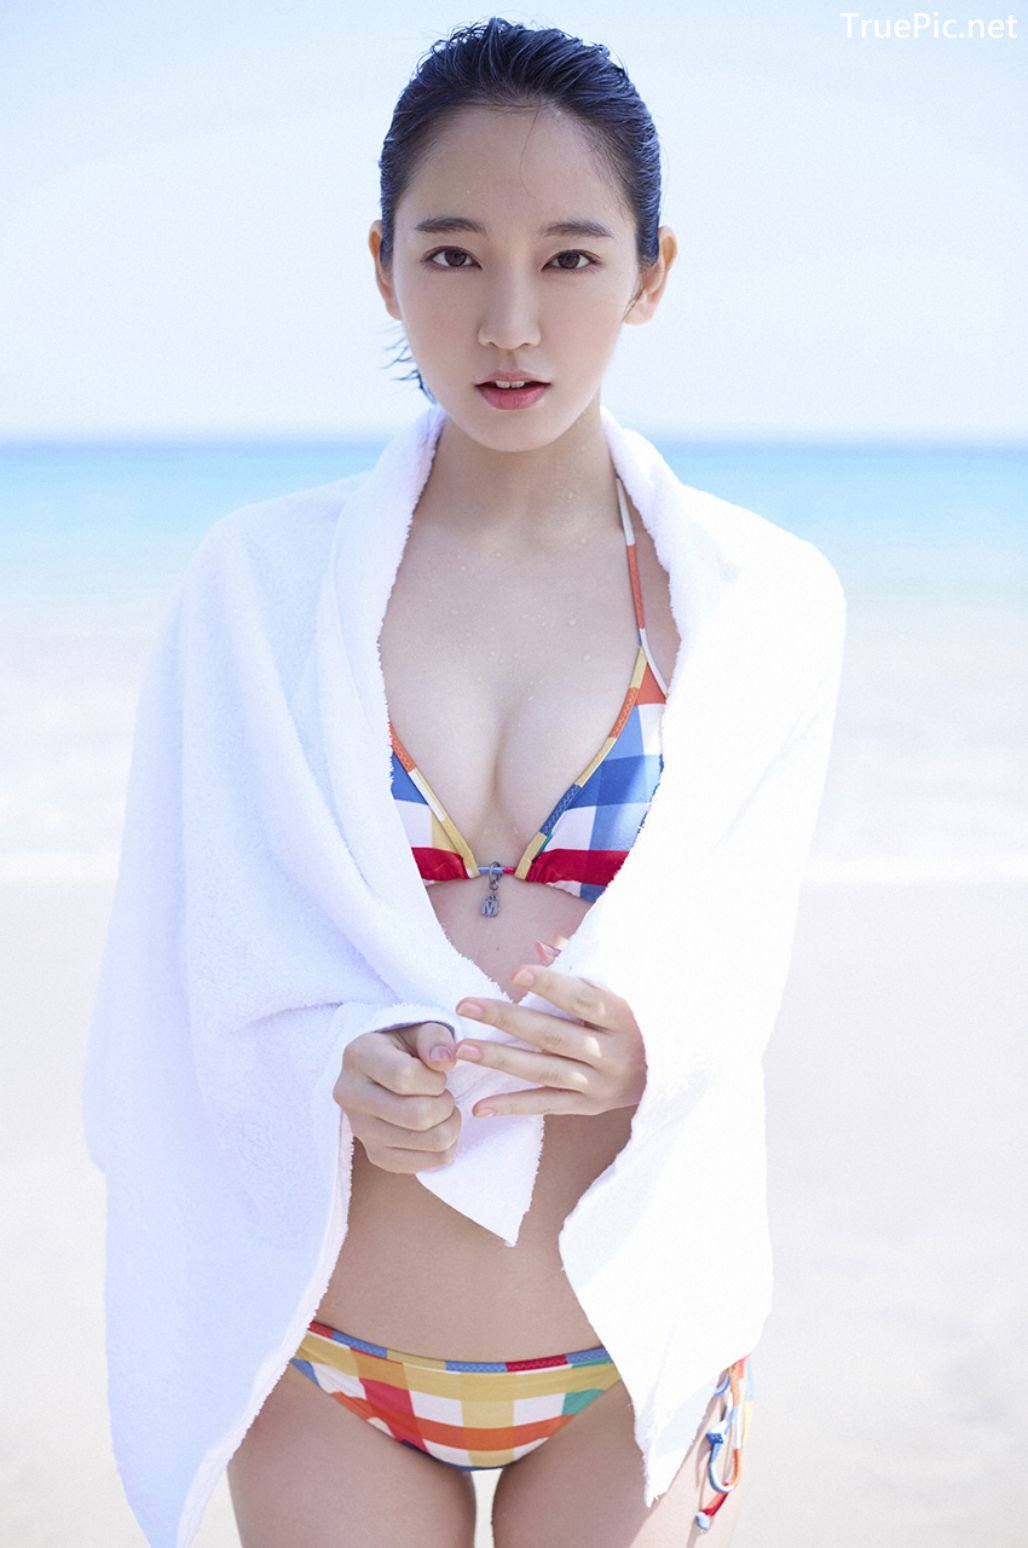 Image-Japanese-Actress-And-Model-Riho-Yoshioka-Pure-Beauty-Of-Sea-Goddess-TruePic.net- Picture-4